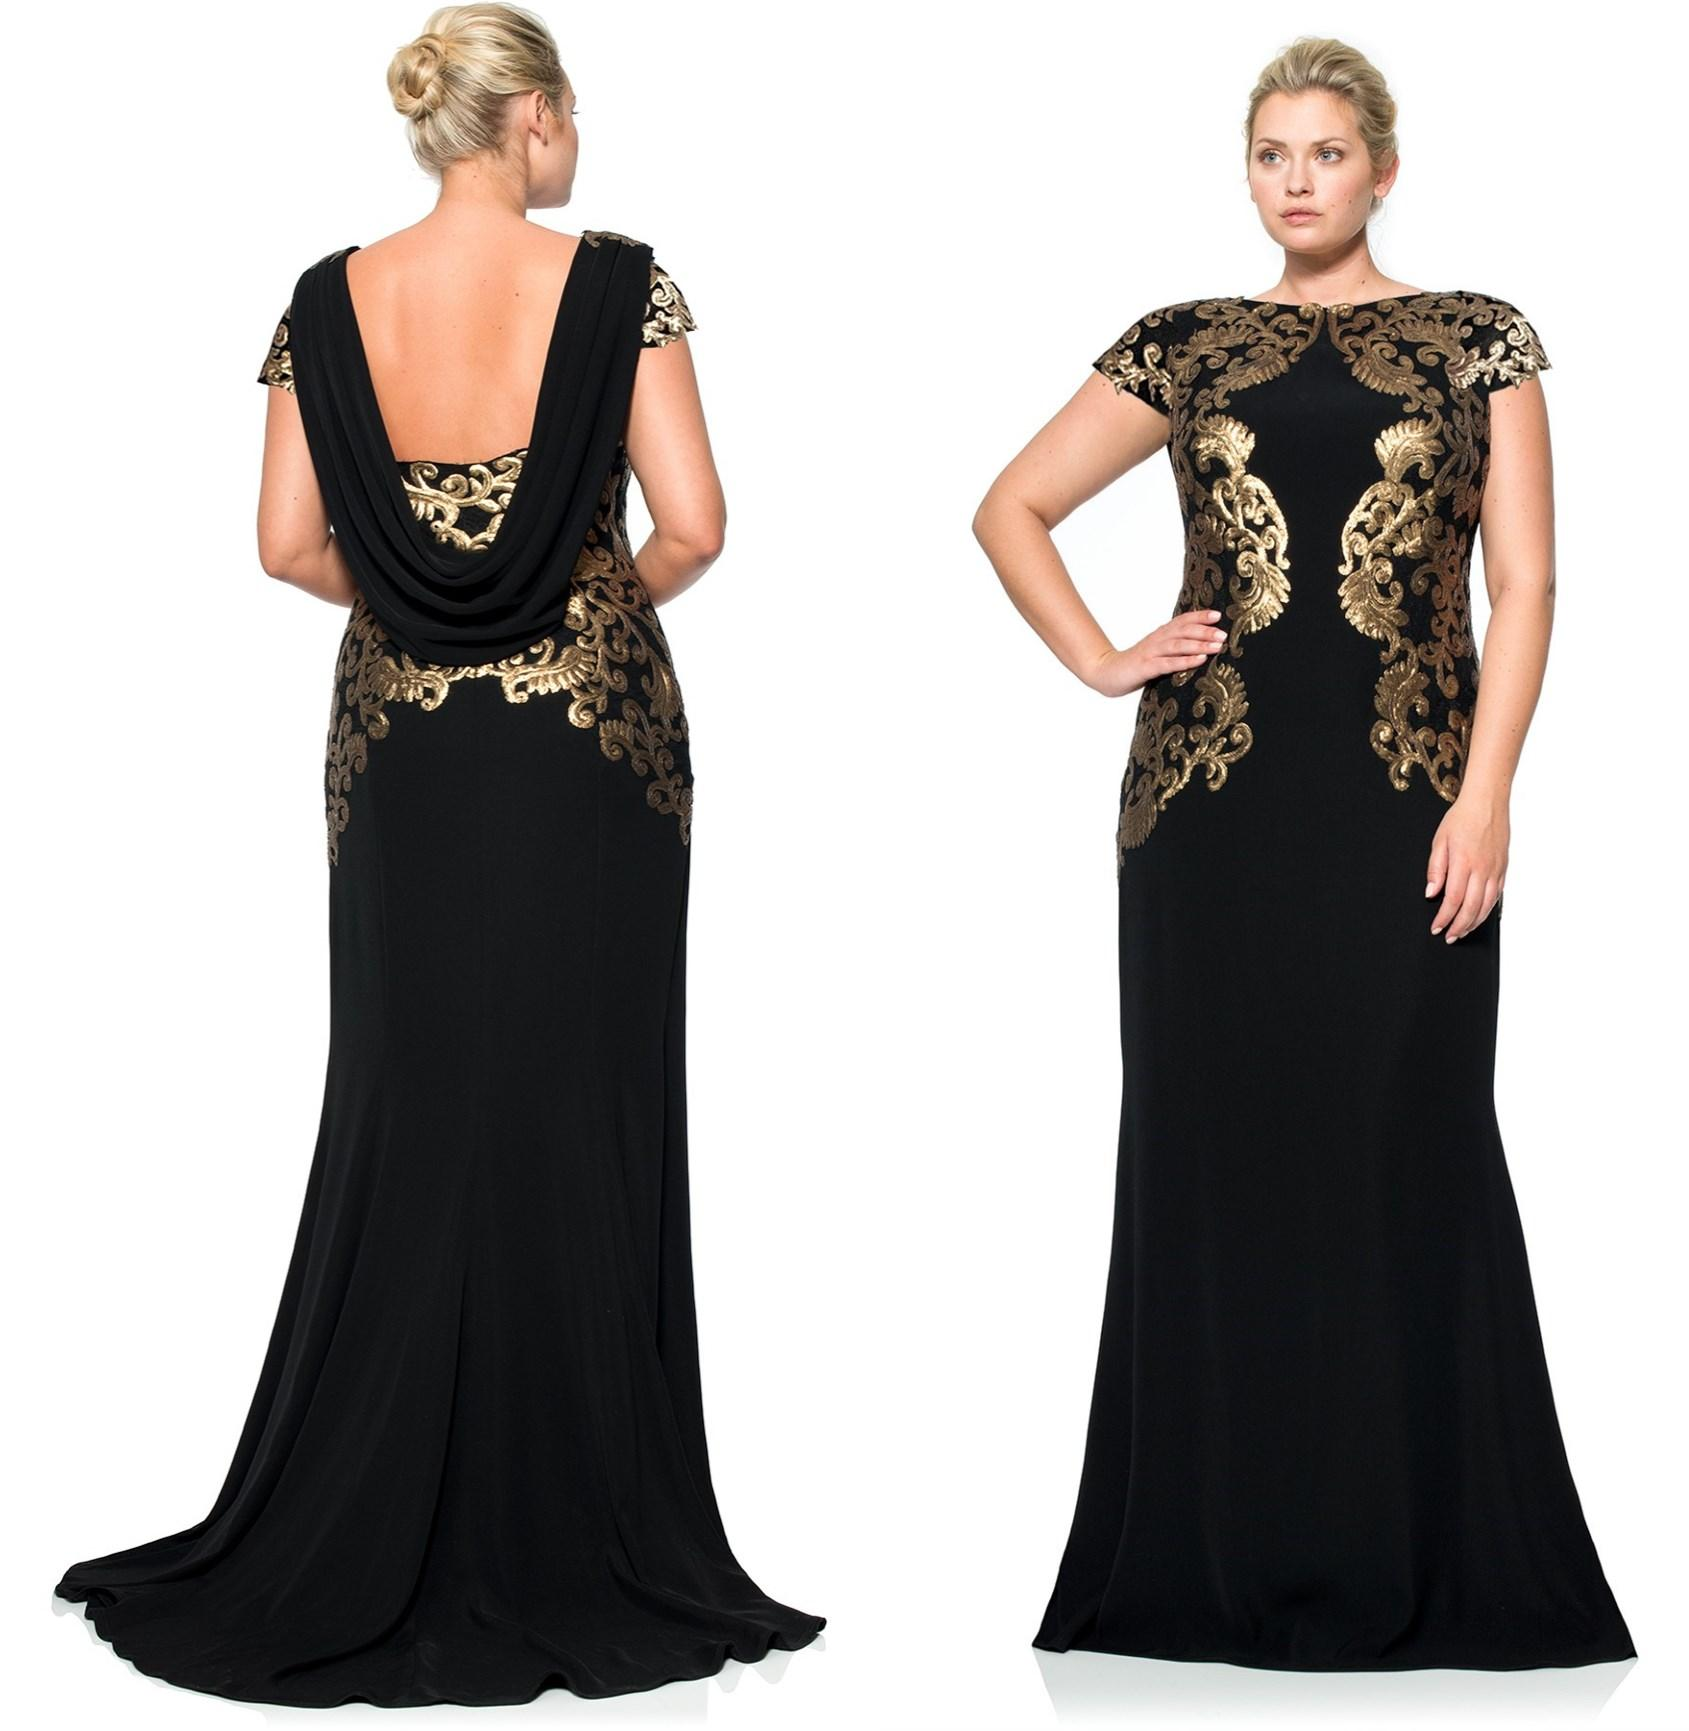 Plus Size 2015 Black Evening Dress Bateau Neck Short Sleeve Floor ...